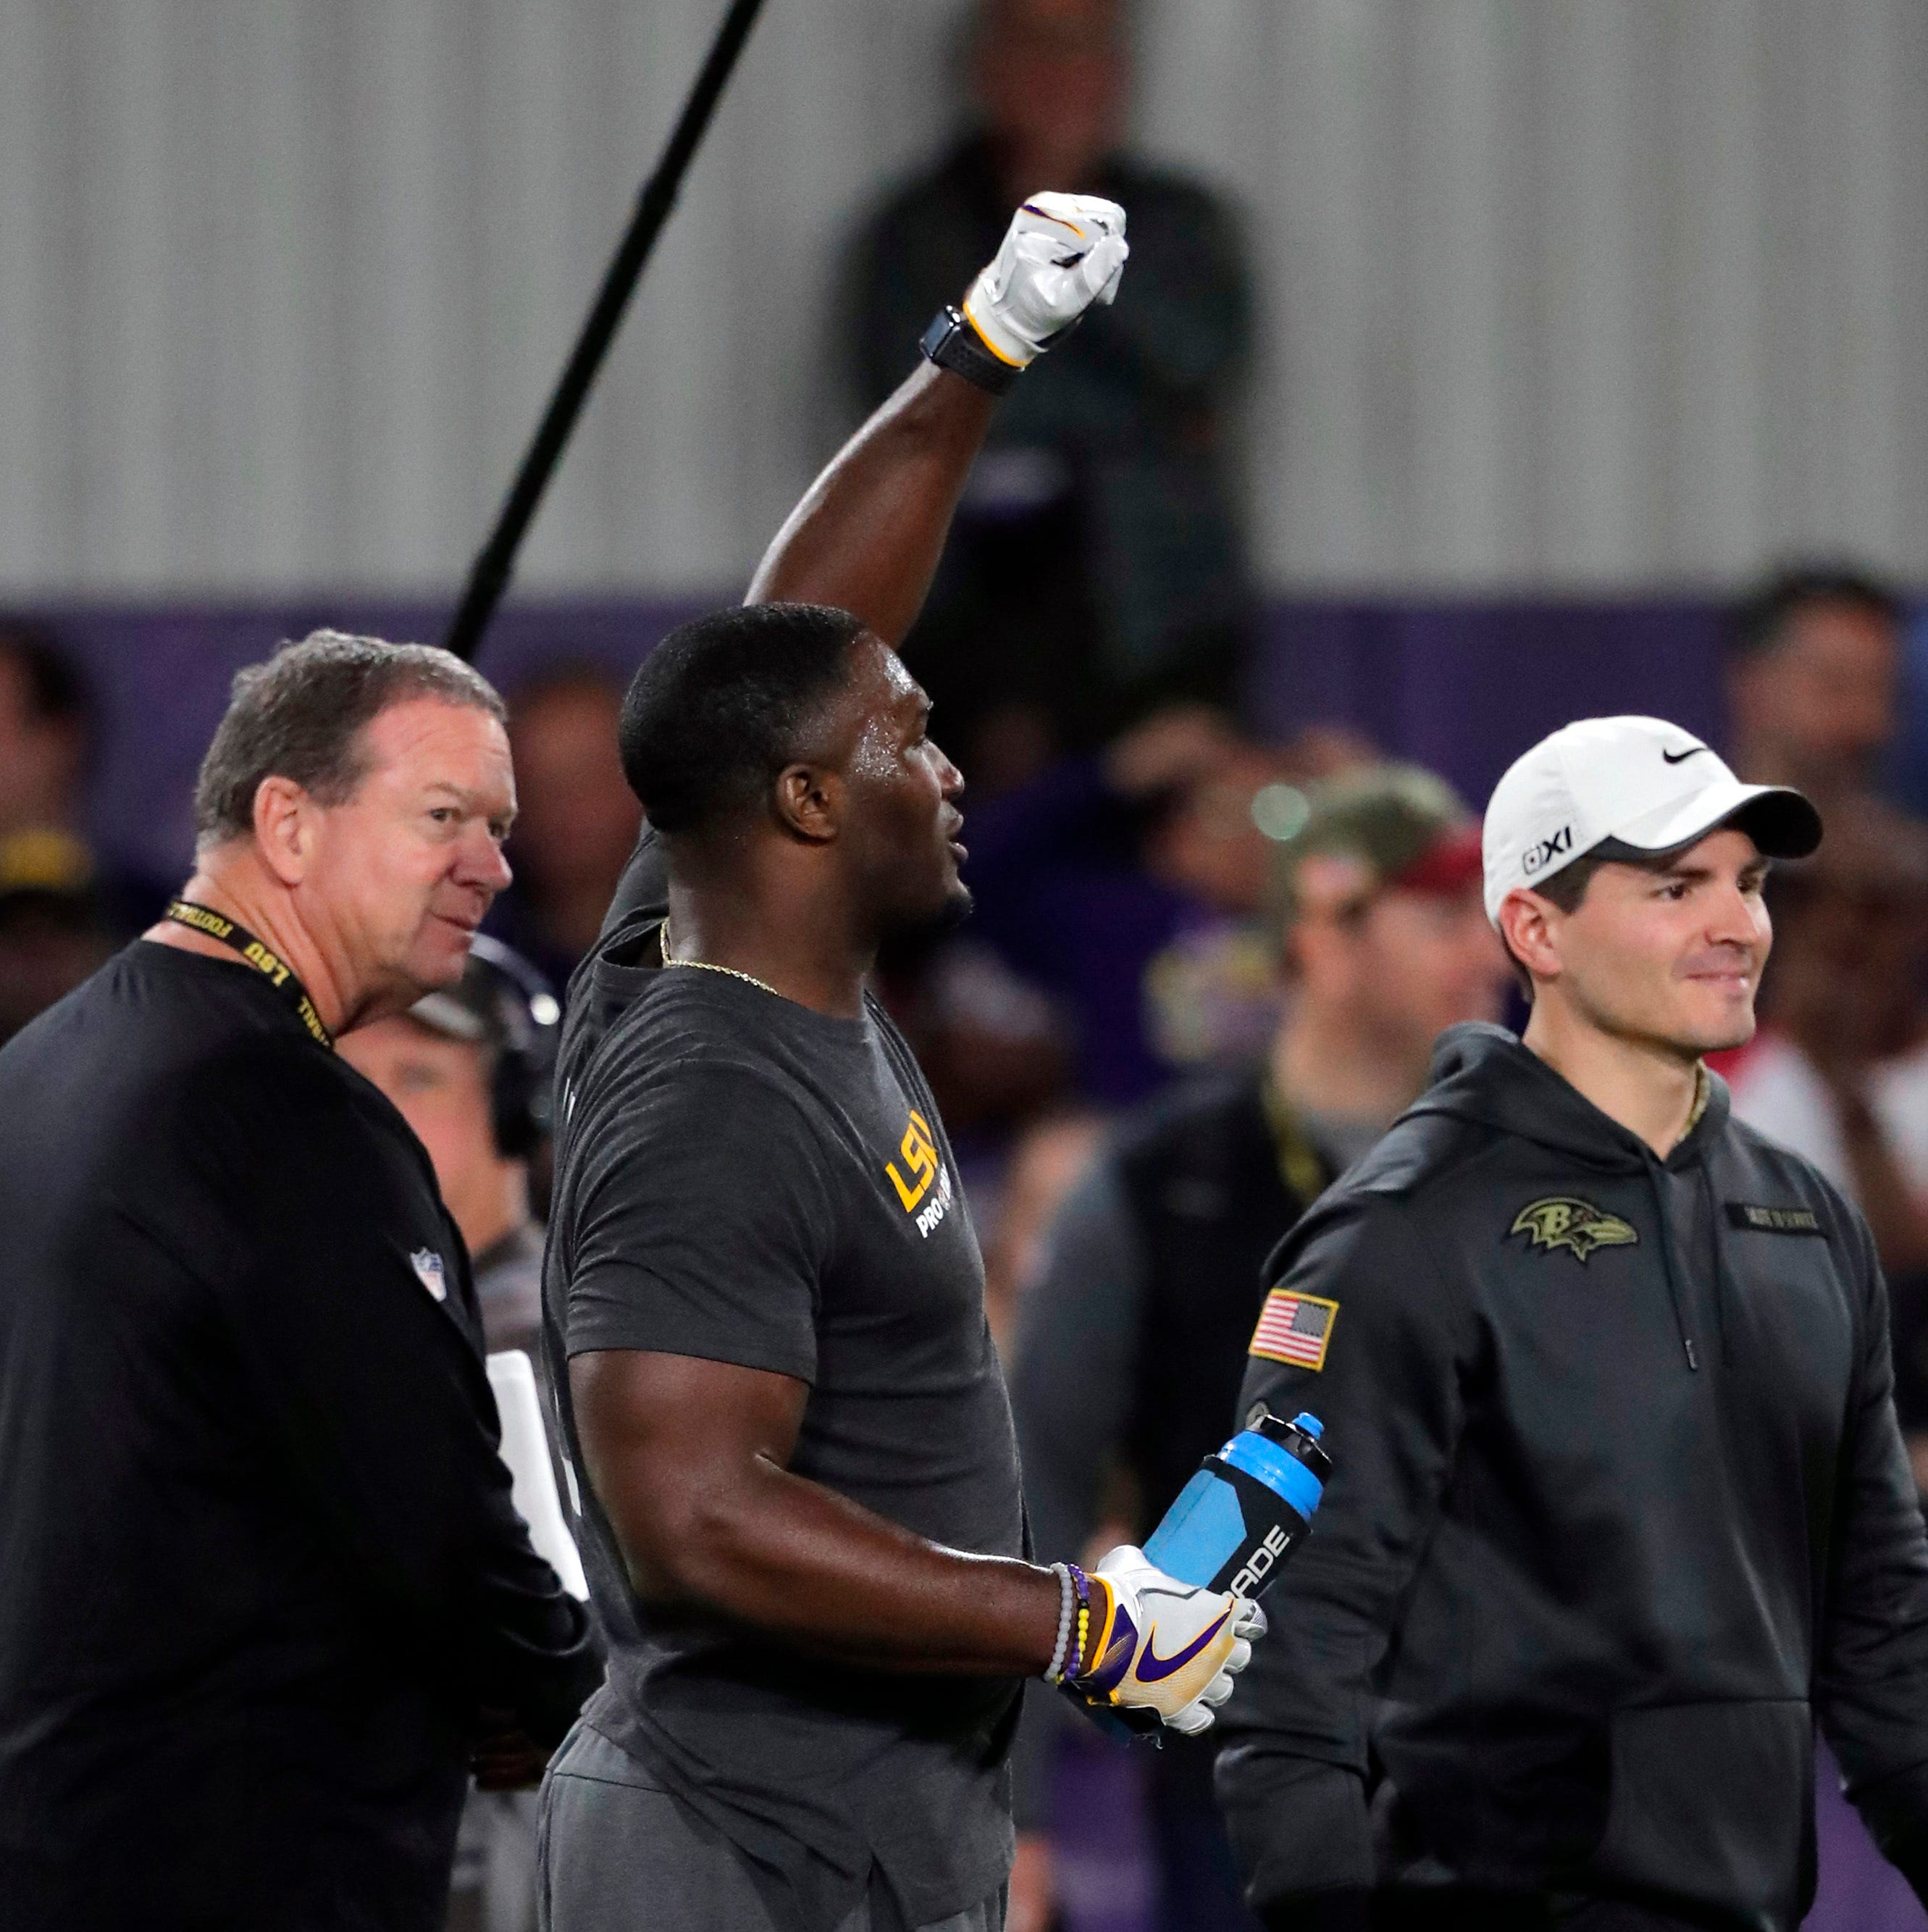 Devin White: 'Draft me' or in 5 years 'I'll be looking for $100 million'